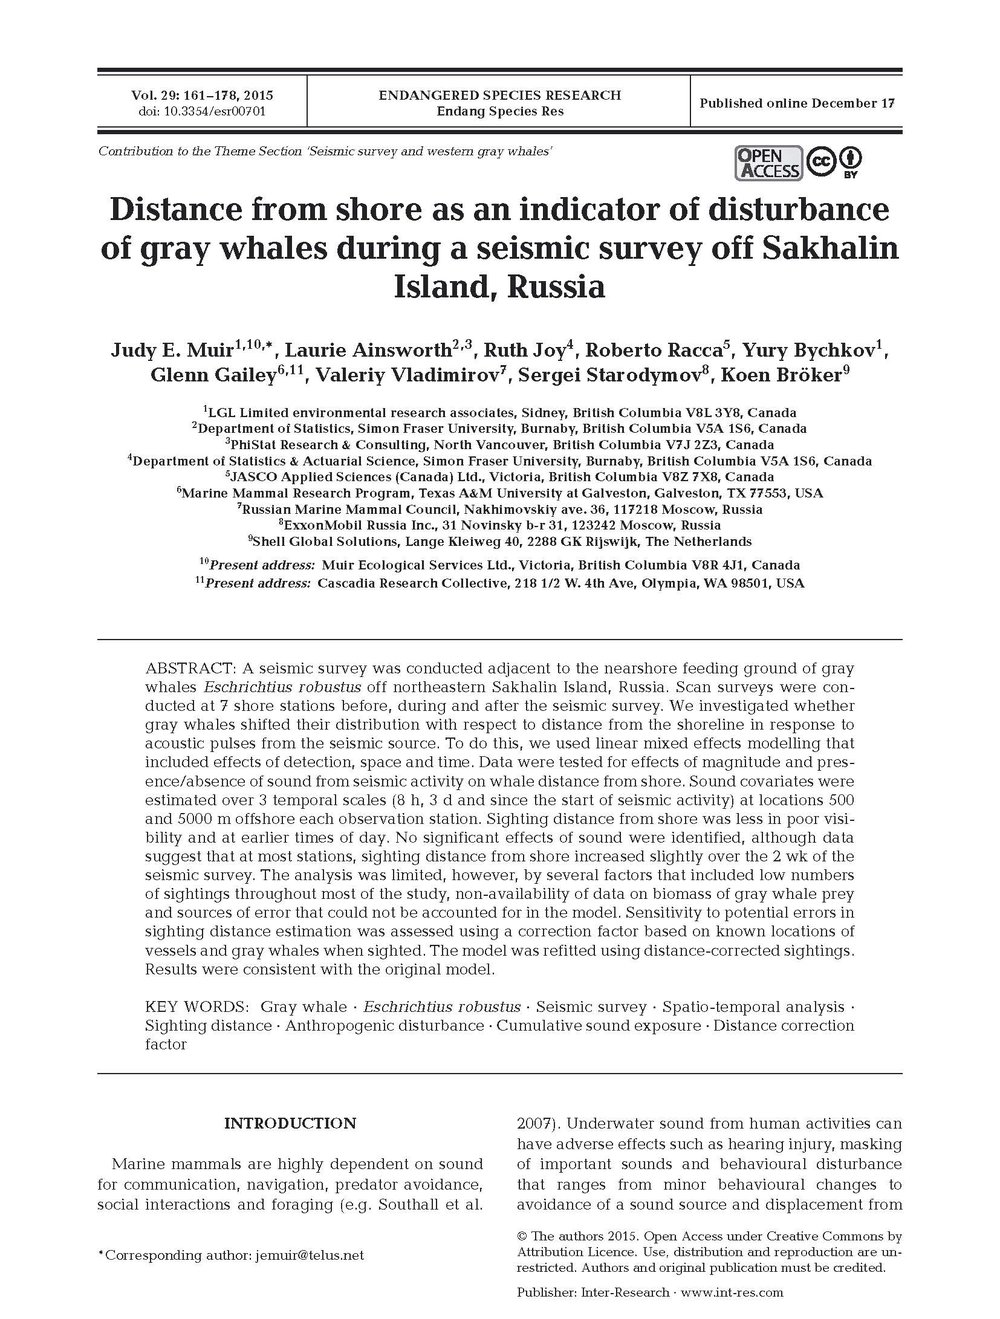 Distance from shore as an indicator of disturbance of gray whales during a seismic survey off Sakhalin Island, Russia - Muir, J.E., L. Ainsworth, R. Joy, R. Racca, Y. Bychkov, G. Gailey, V. Vladmirov, S. Starodymov, and K. BrökerEndang. Species Res. 29: 161-178 (2015)doi.org/10.3354/esr00701